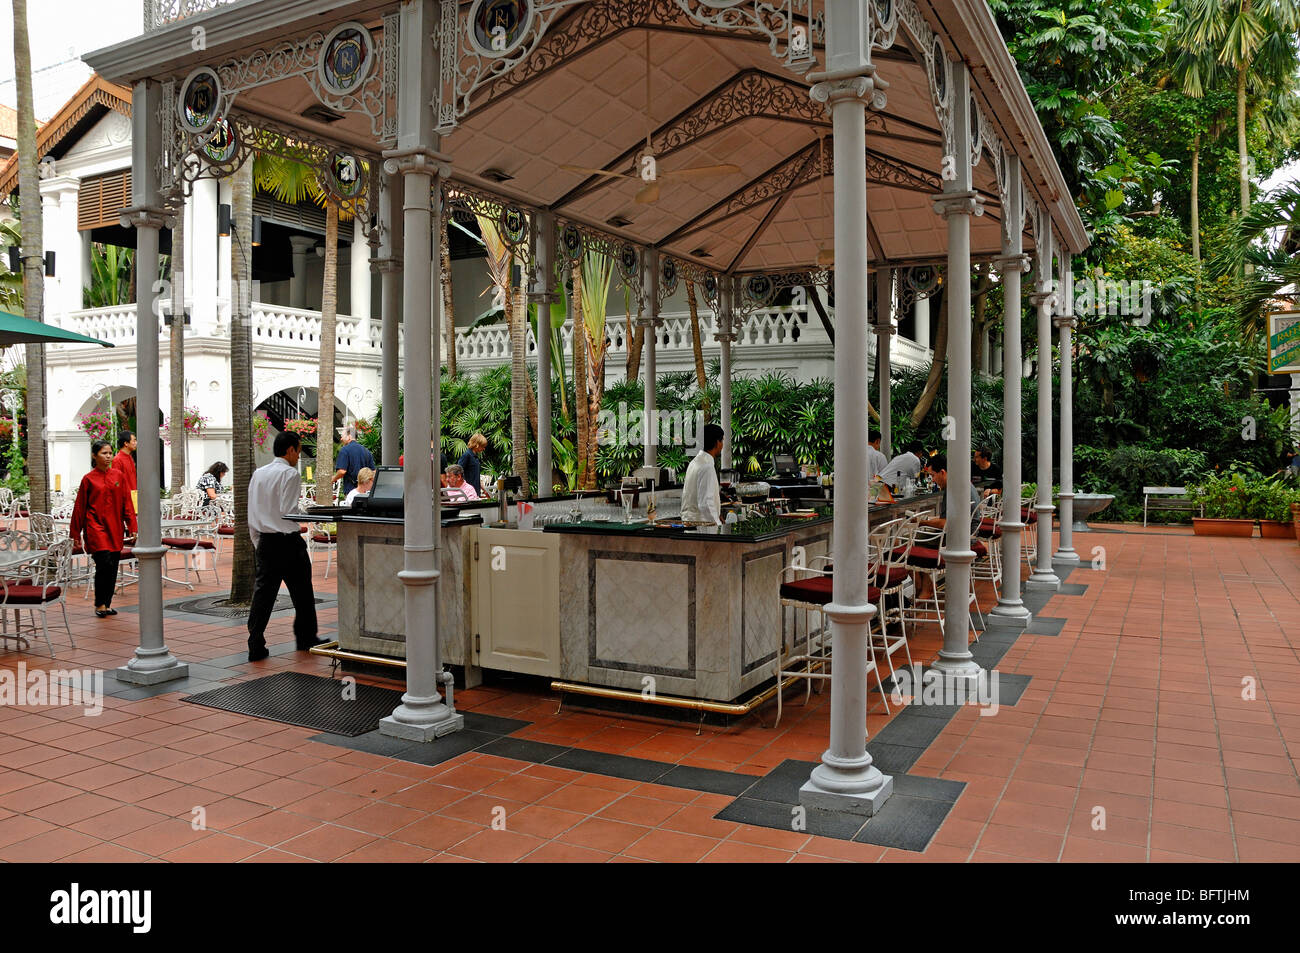 Raffles Hotel, Outdoor Terrace or Courtyard Bar, Singapore - Stock Image